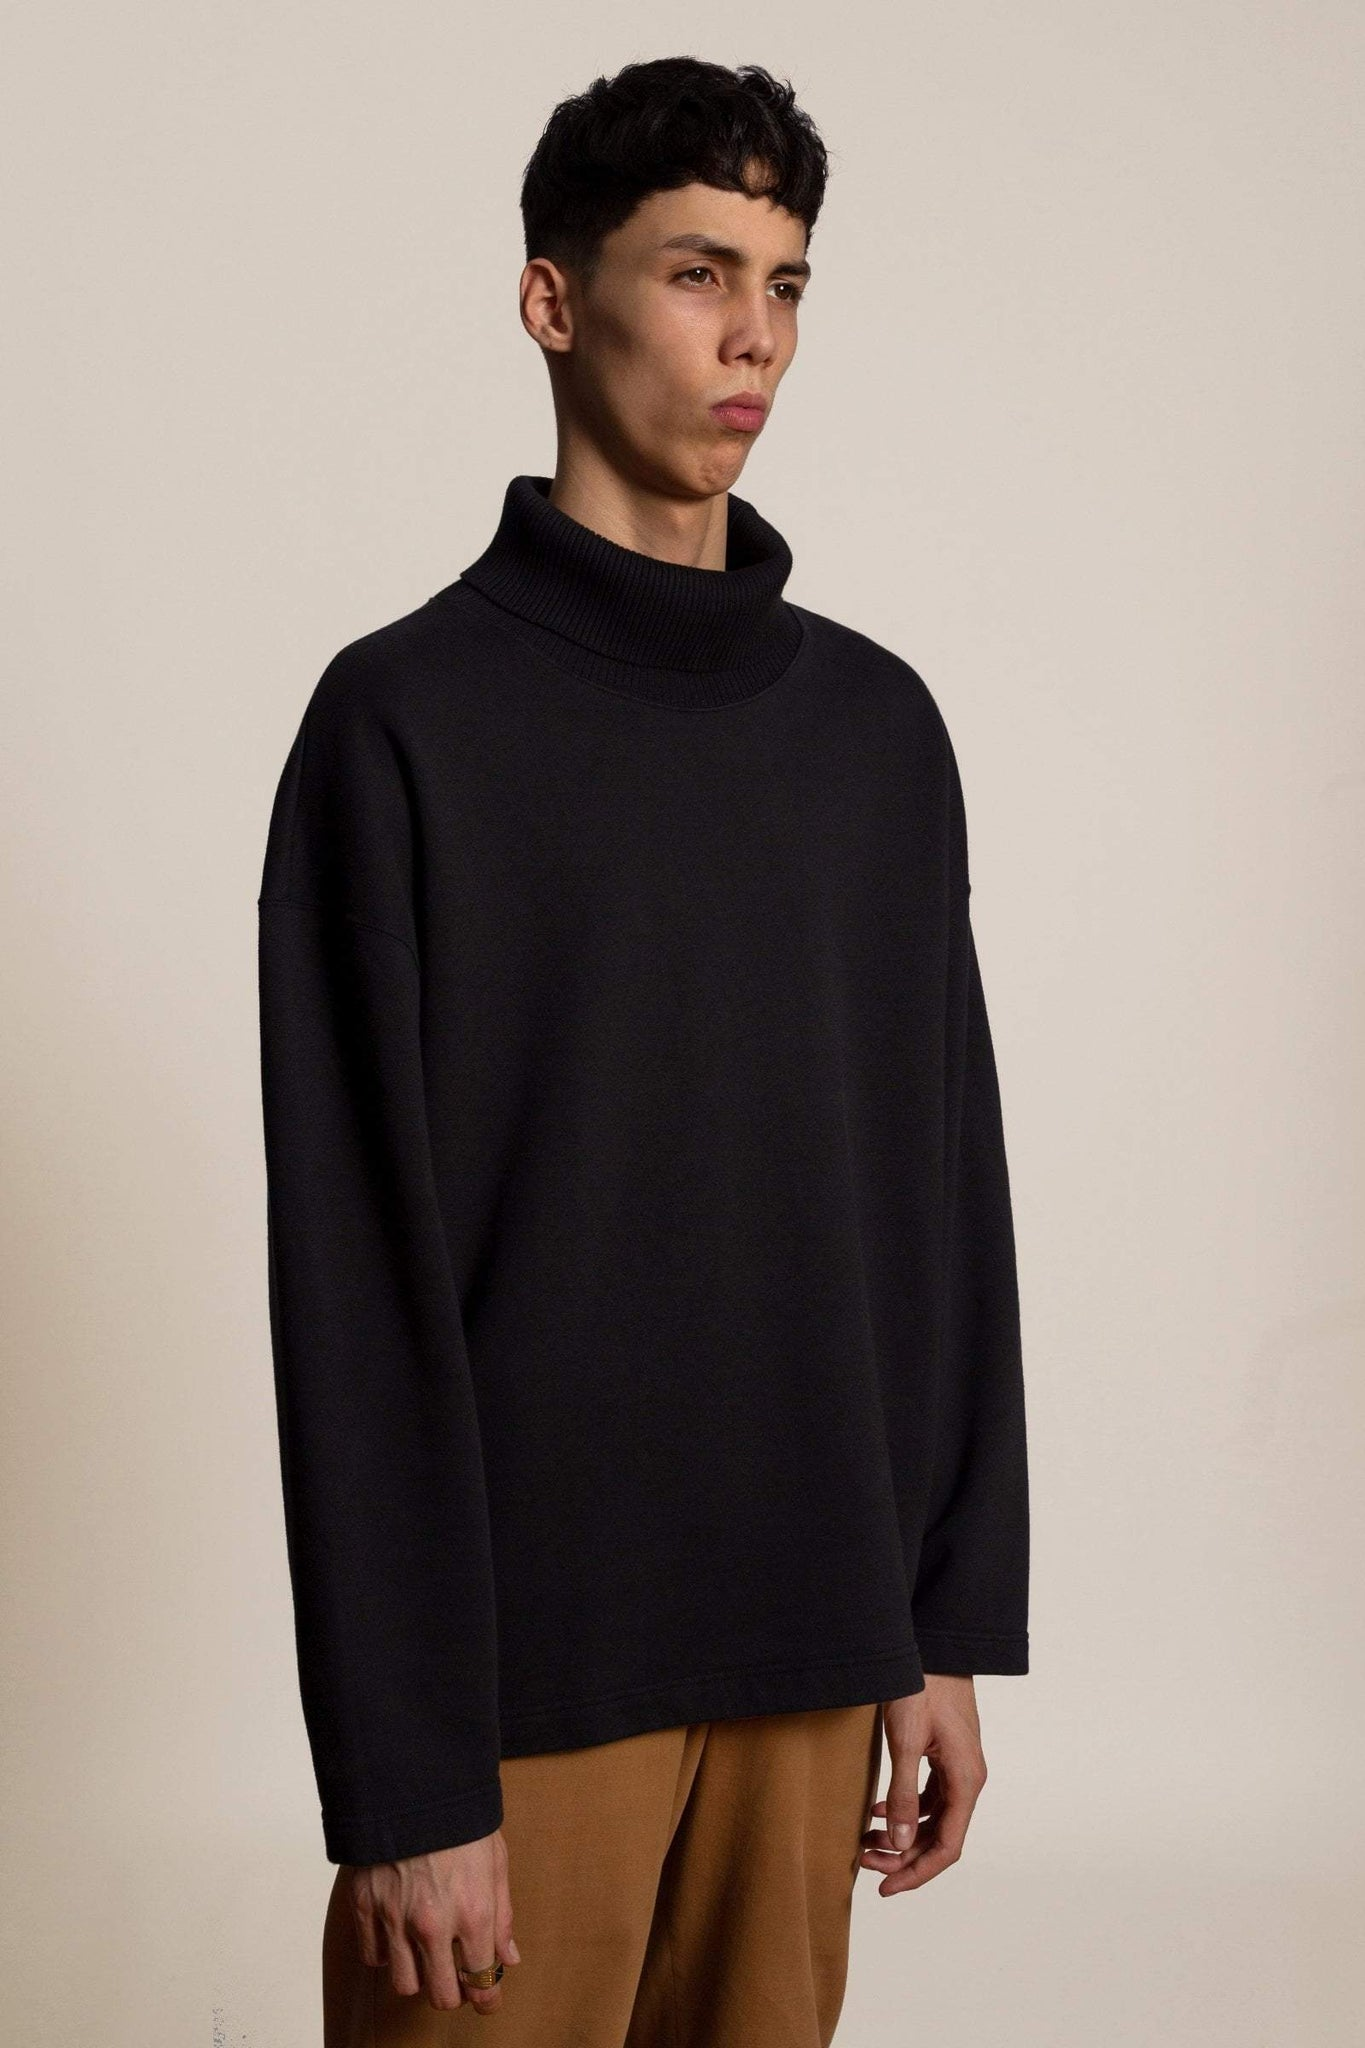 Oversized cotton turtle neck - blue black